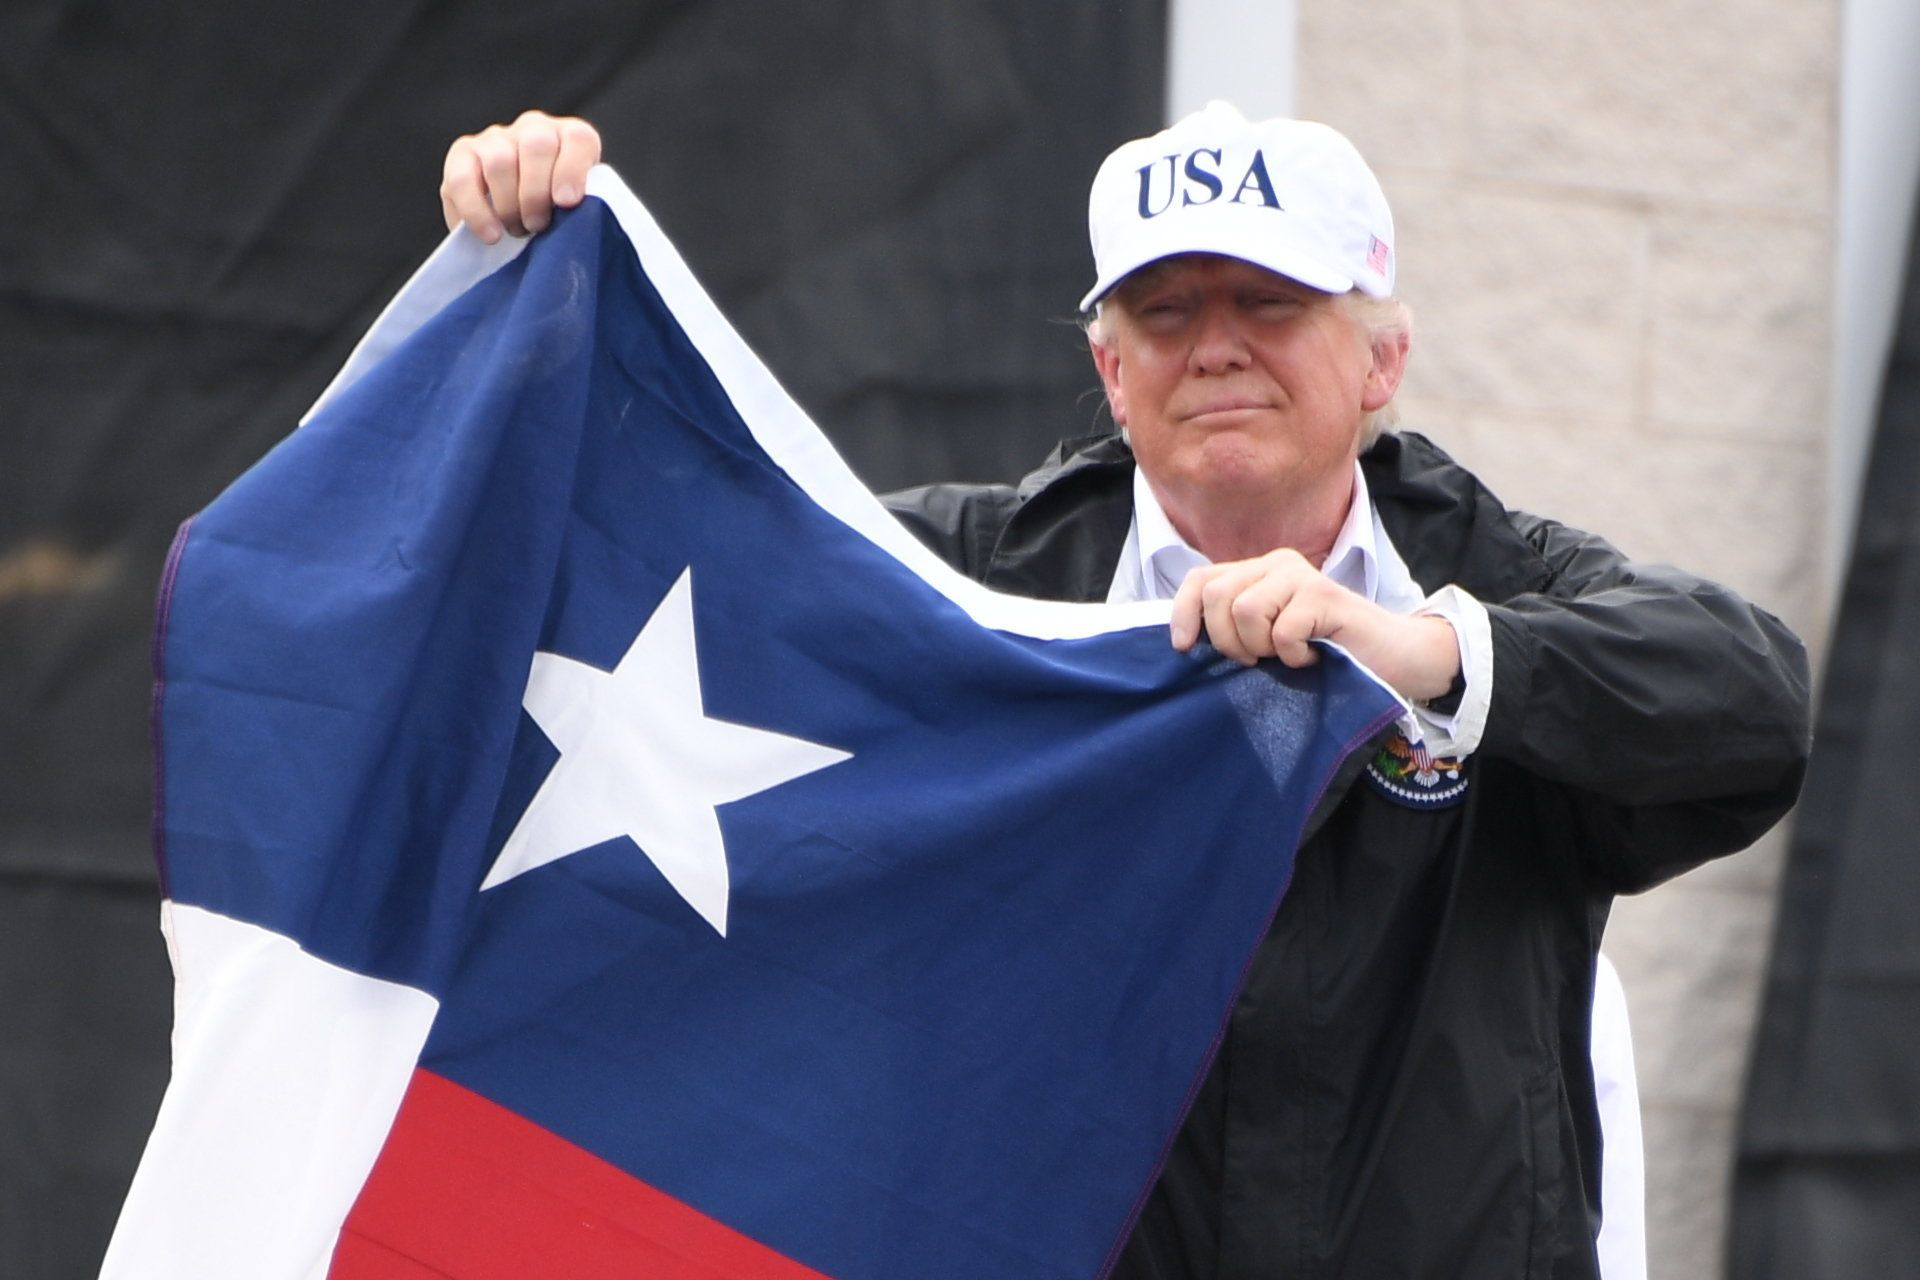 US President Donald Trump holds the state flag of Texas outside of the Annaville Fire House after attending a briefing on Hurricane Harvey in Corpus Christi, Texas on August 29, 2017. President Donald Trump flew into storm-ravaged Texas Tuesday in a show of solidarity and leadership in the face of the deadly devastation wrought by Harvey -- as the battered US Gulf Coast braces for even more torrential rain.   / AFP PHOTO / JIM WATSON        (Photo credit should read JIM WATSON/AFP/Getty Images)